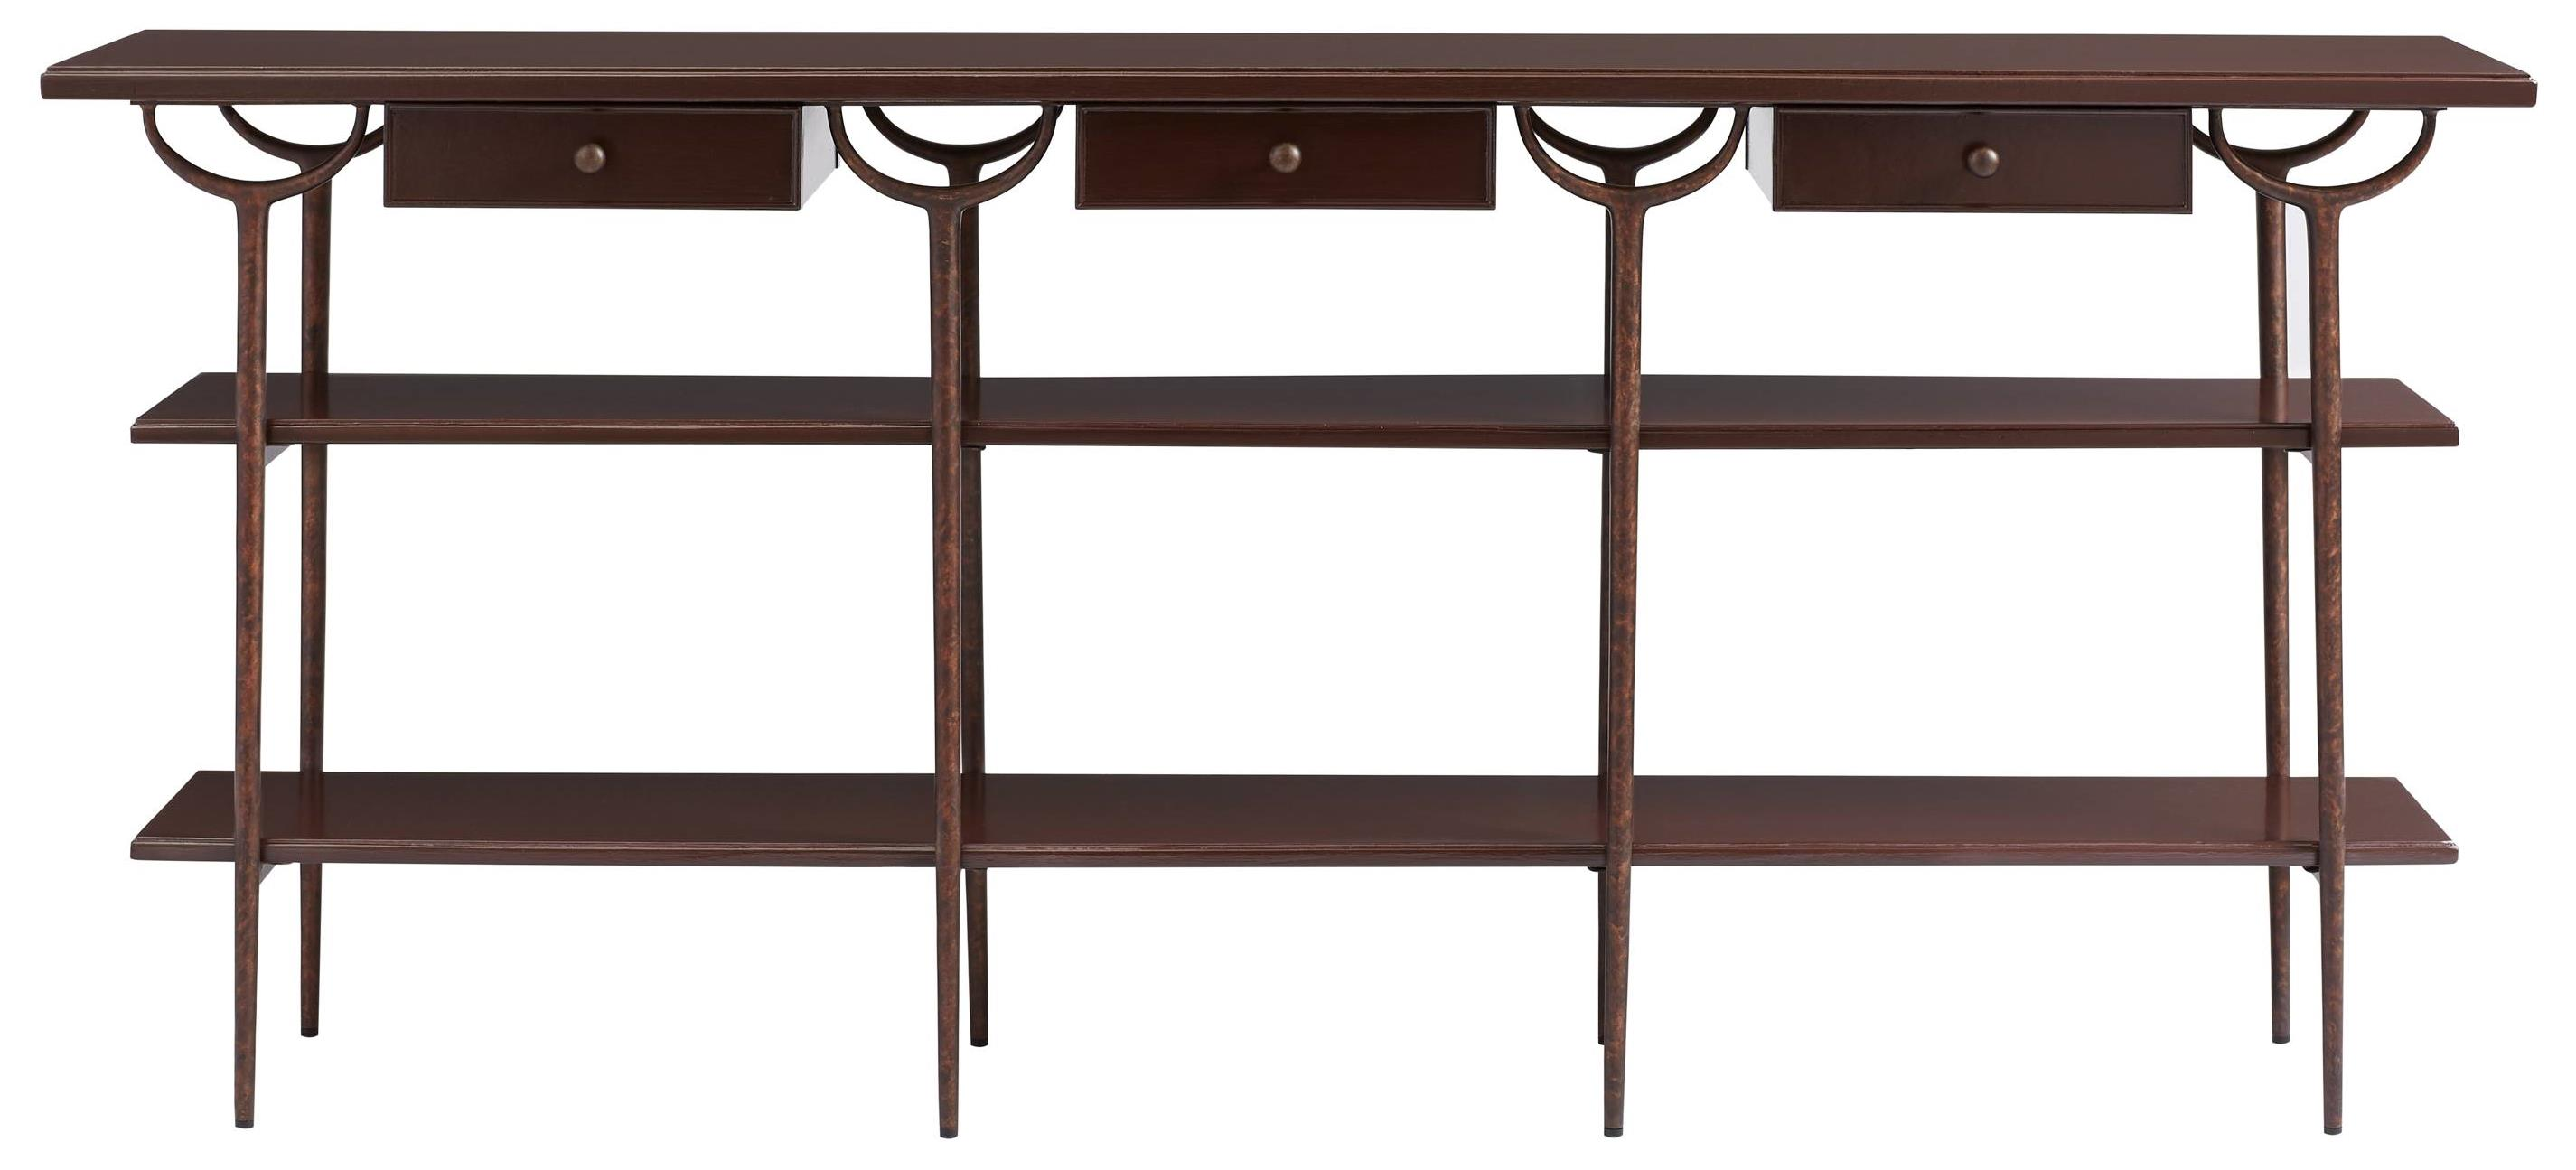 Stanley Furniture Villa Couture Asti Console Table - Item Number: 510-75-05